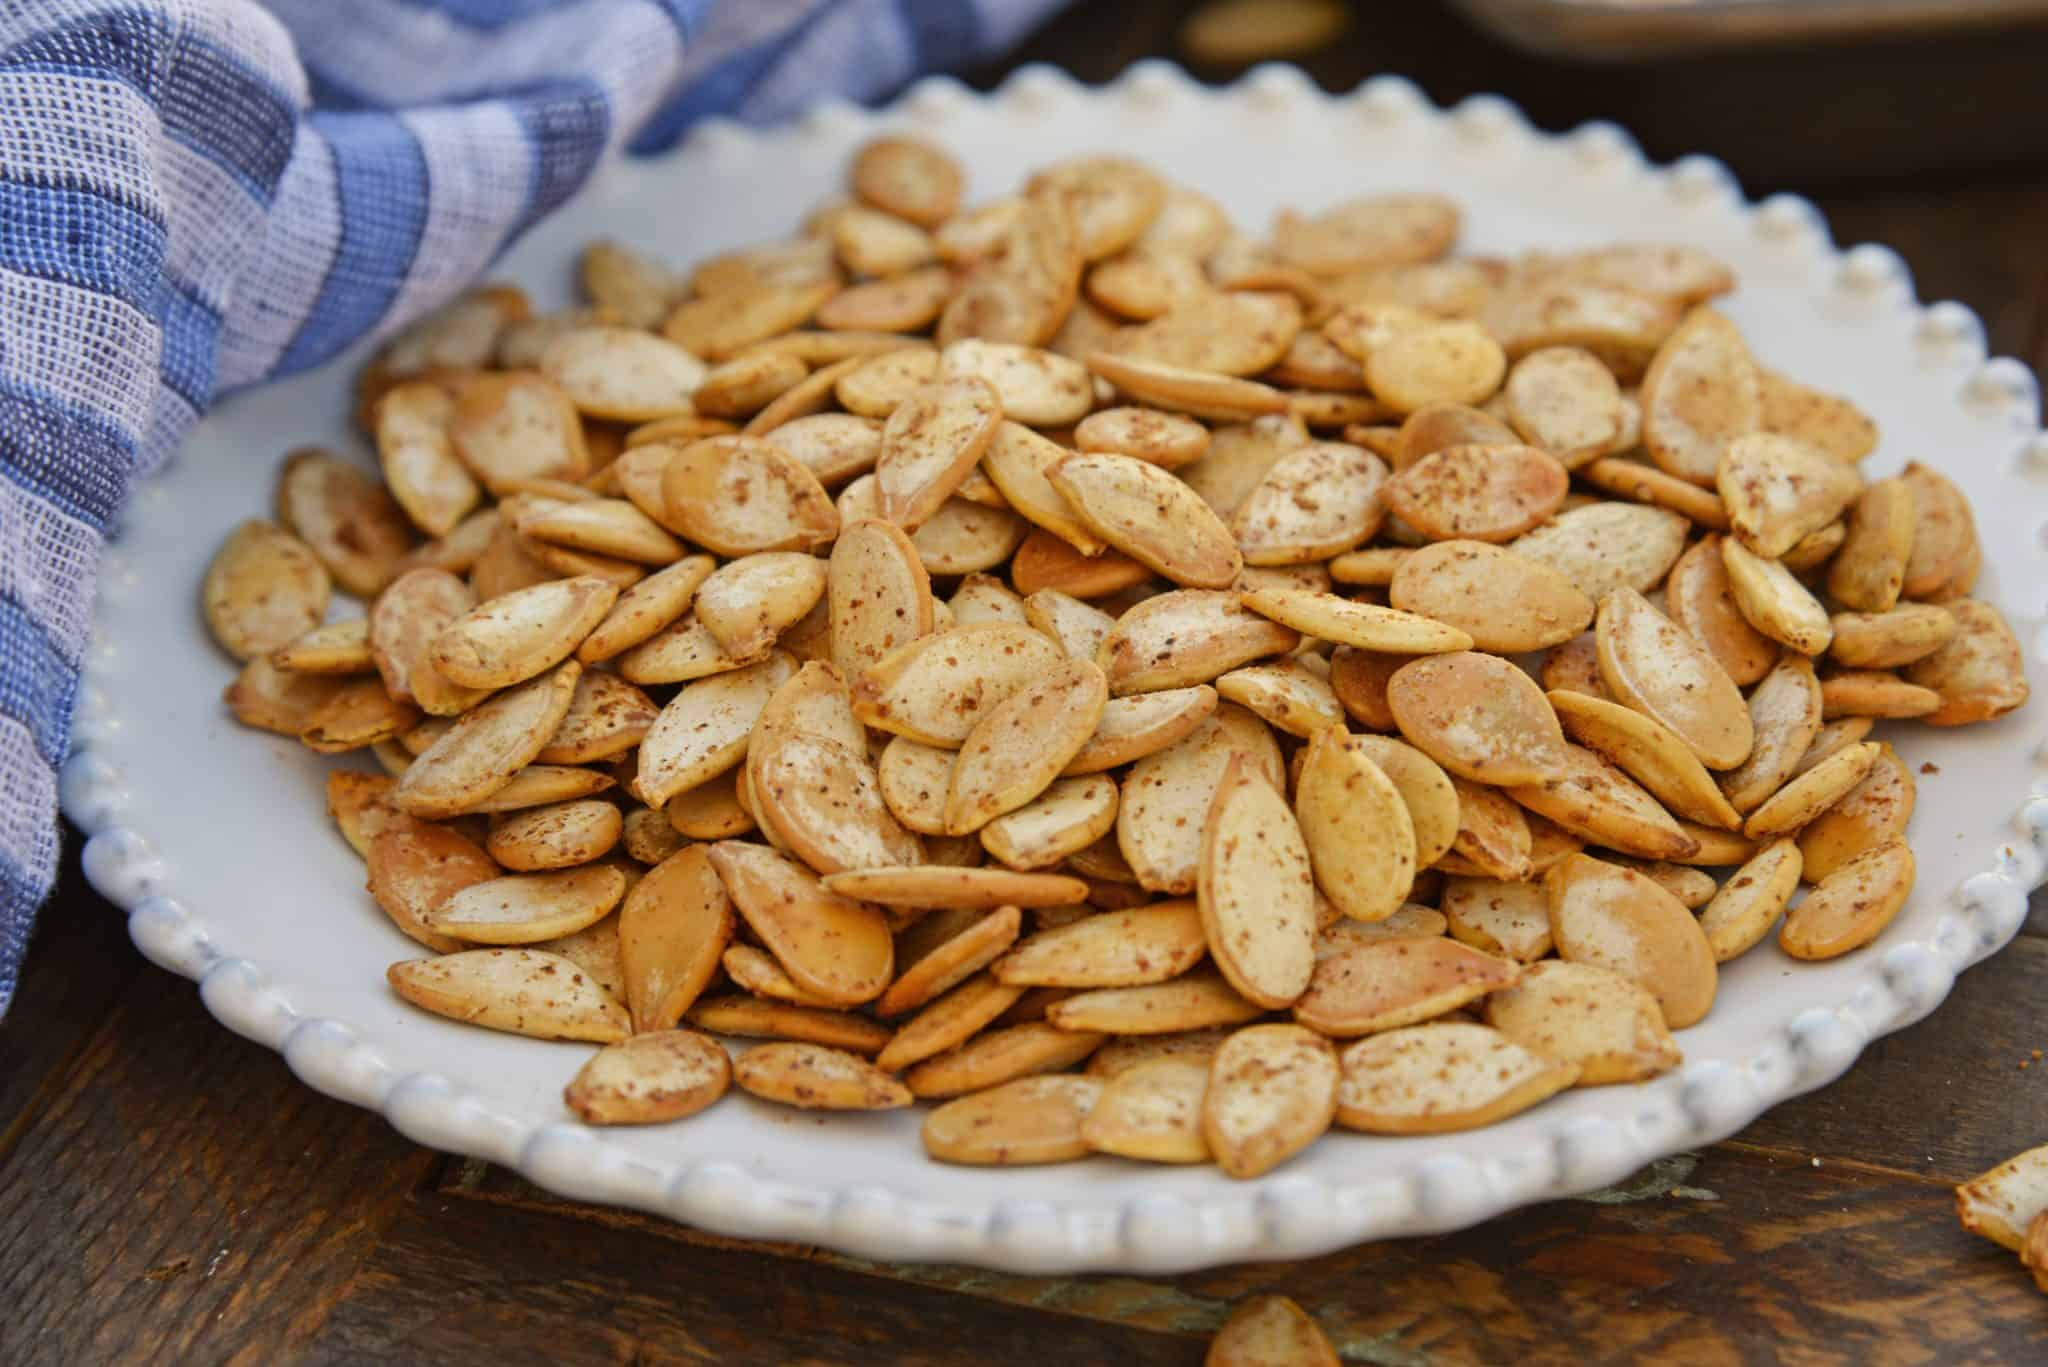 These Roasted Pumpkin Seeds are the perfect fall snack, or topping to add to salads or pasta! Pumpkin Seeds benefits are that they are healthy and nutritious! #pumpkinseedbenefits #roastedpumpkinseeds www.savoryexperiments.com